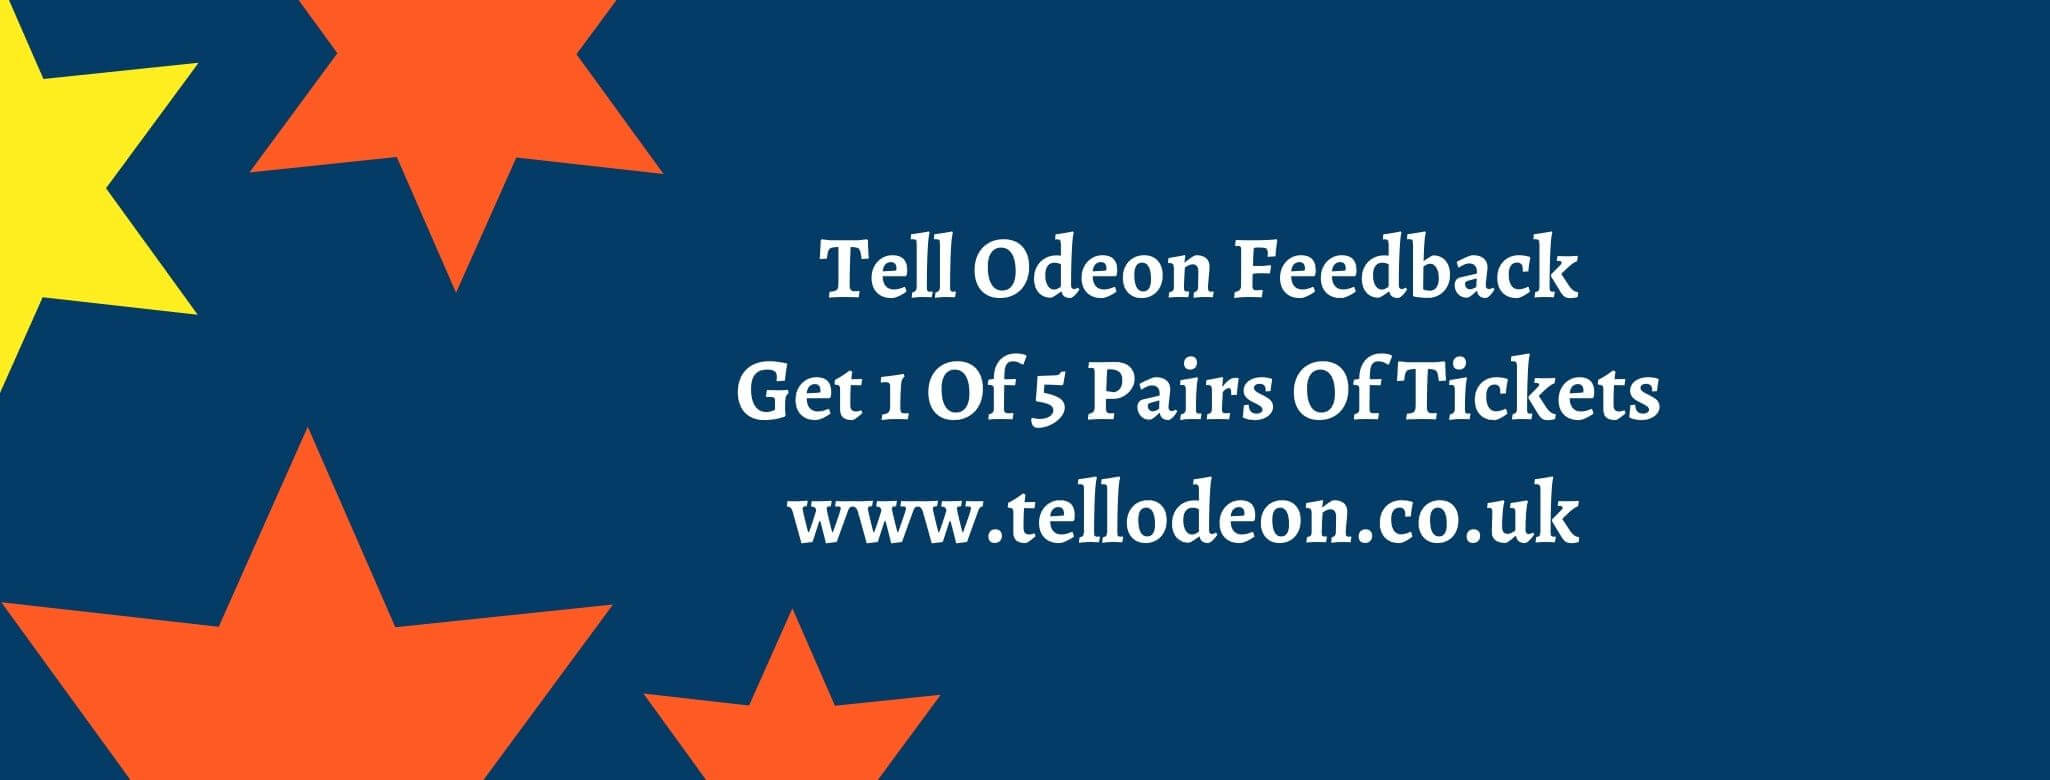 tell odeon feedback